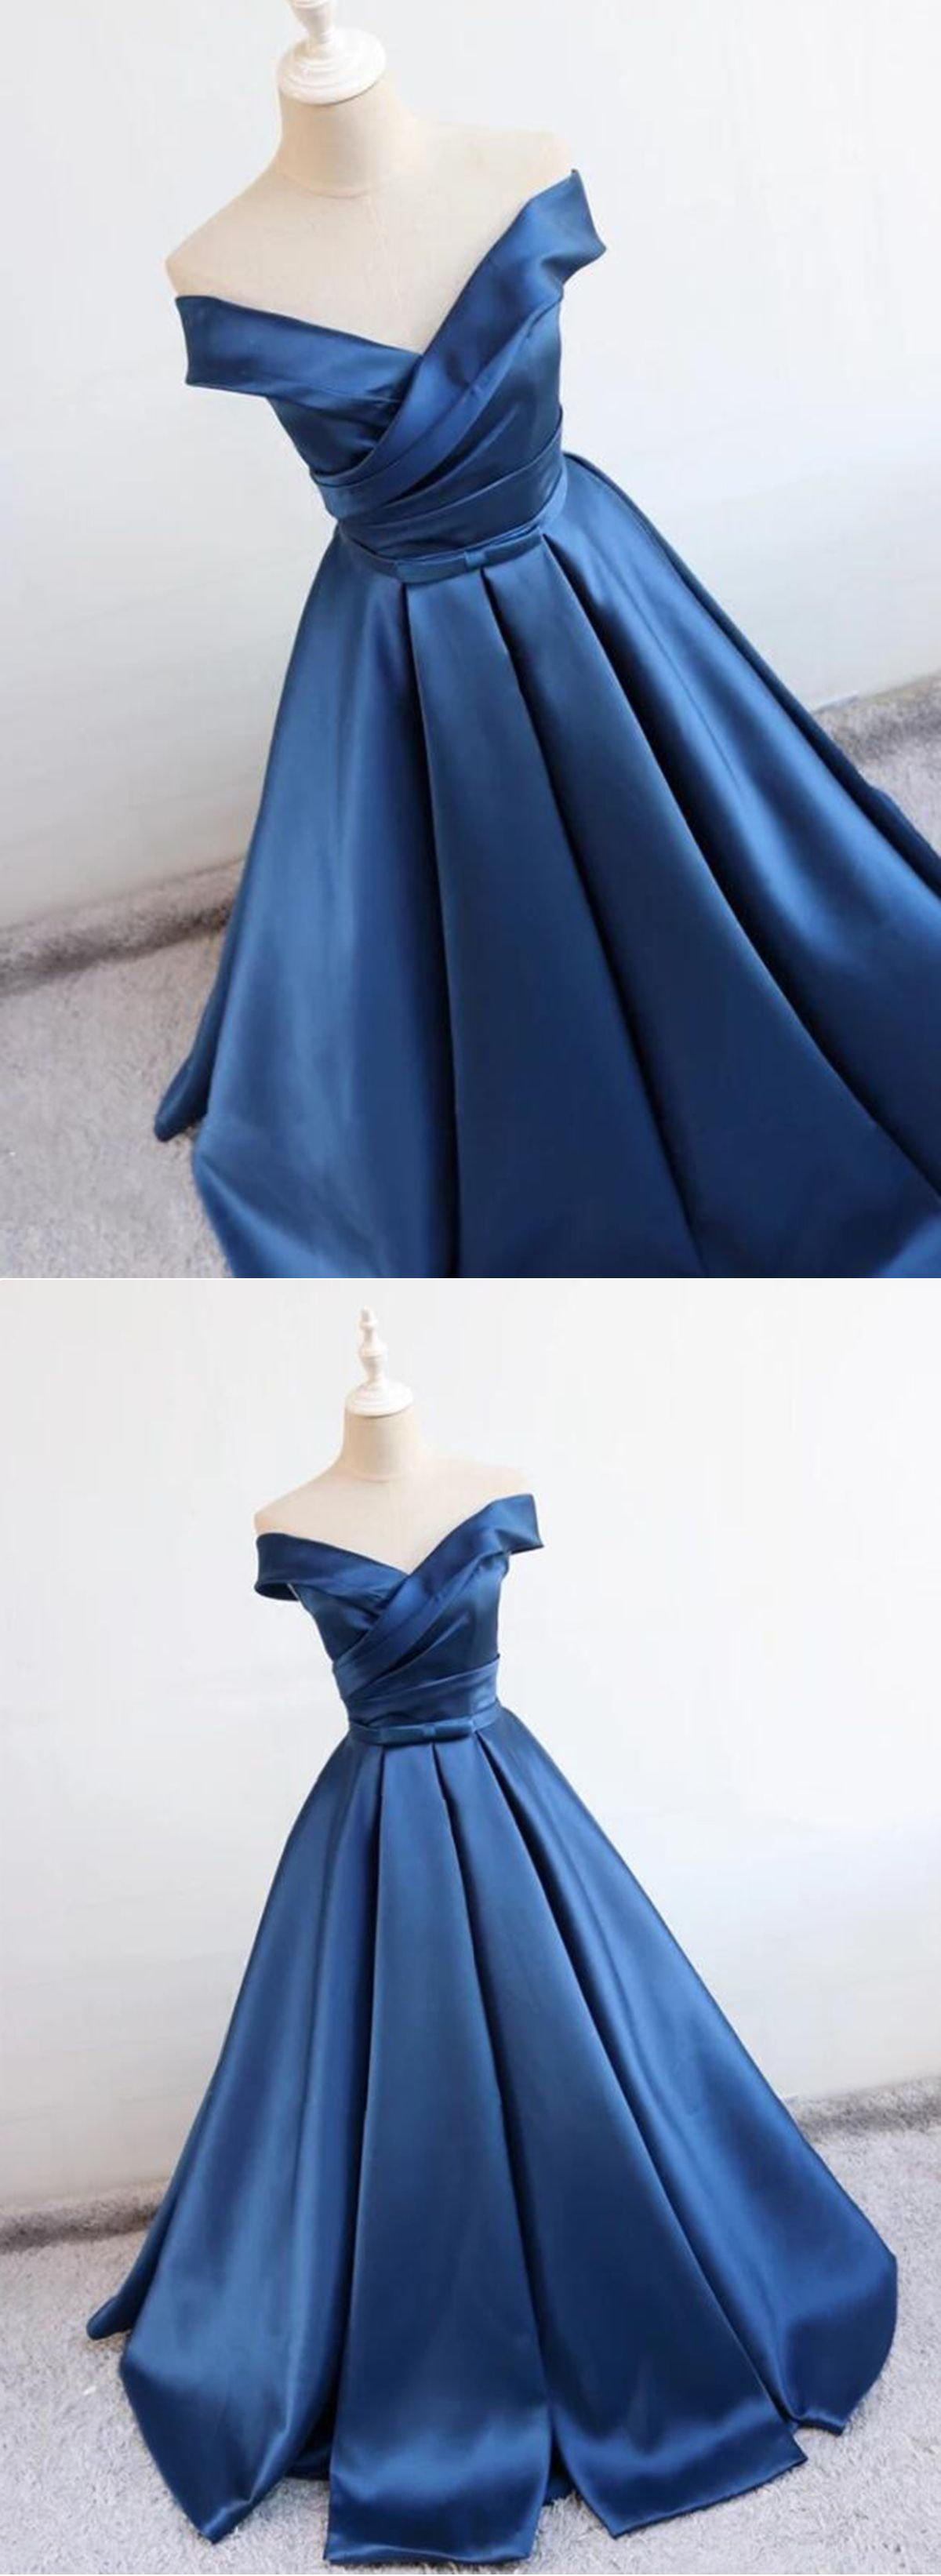 Deep blue v neck long off shoulder prom dress long satin homecoming